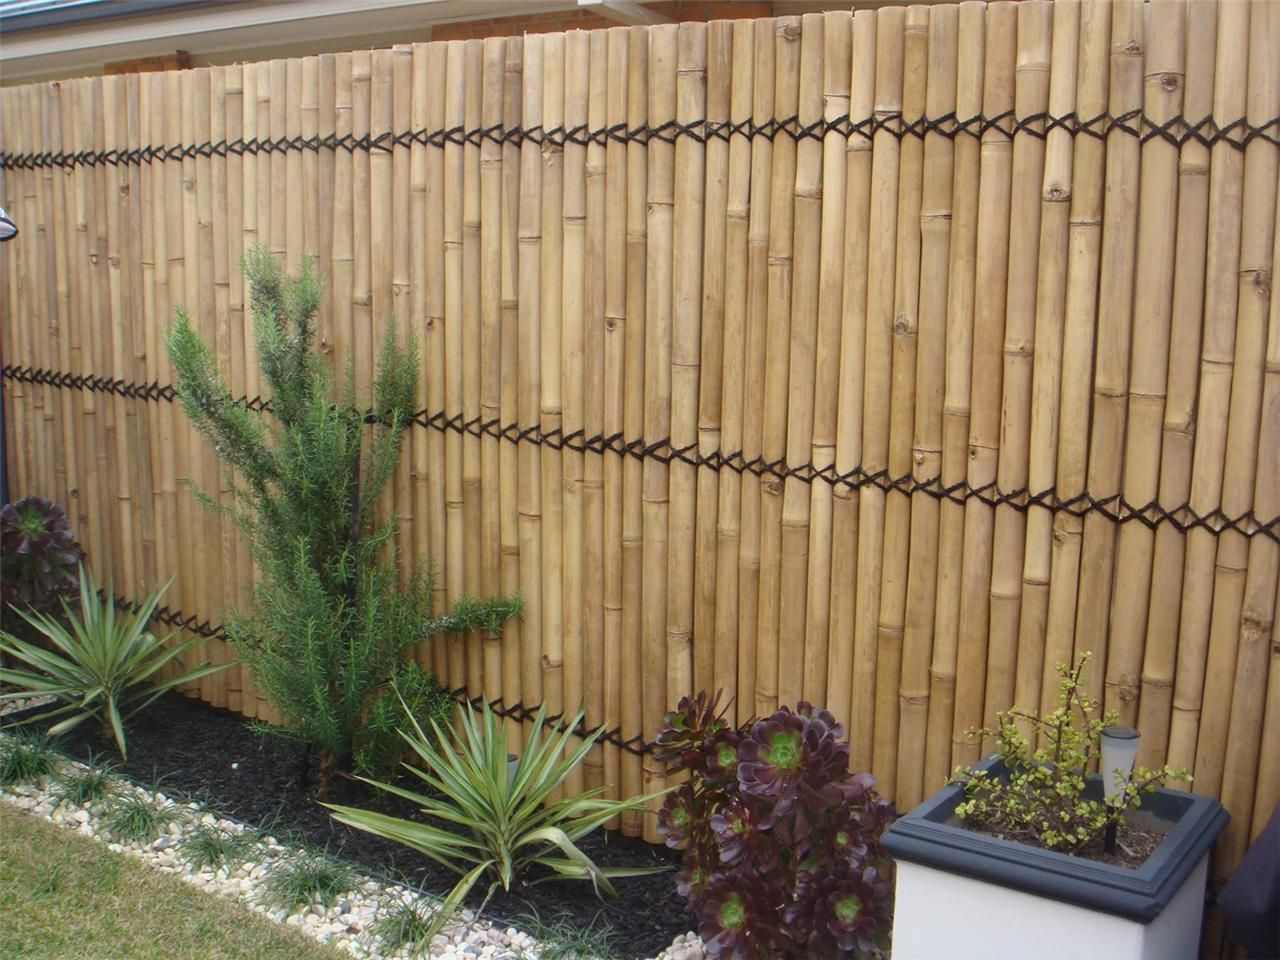 BAMBOO FENCE FENCING BAMBOO SCREEN 2 4M X 1M DOUBLE LACQUER